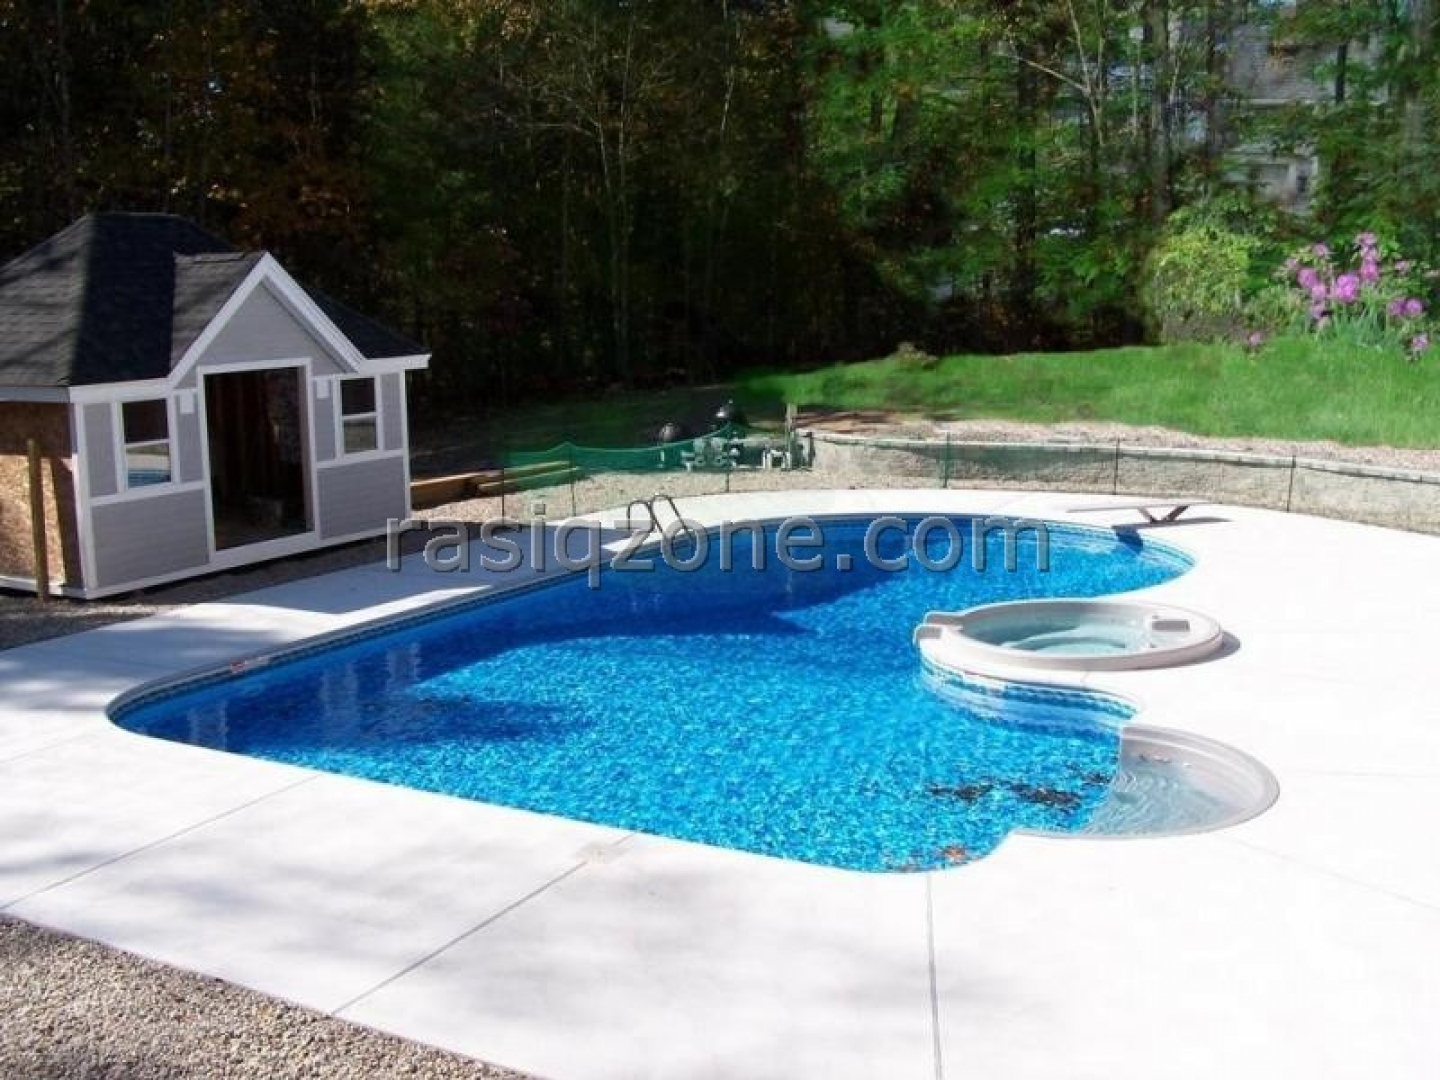 Backyard designs with pools - large and beautiful photos ...